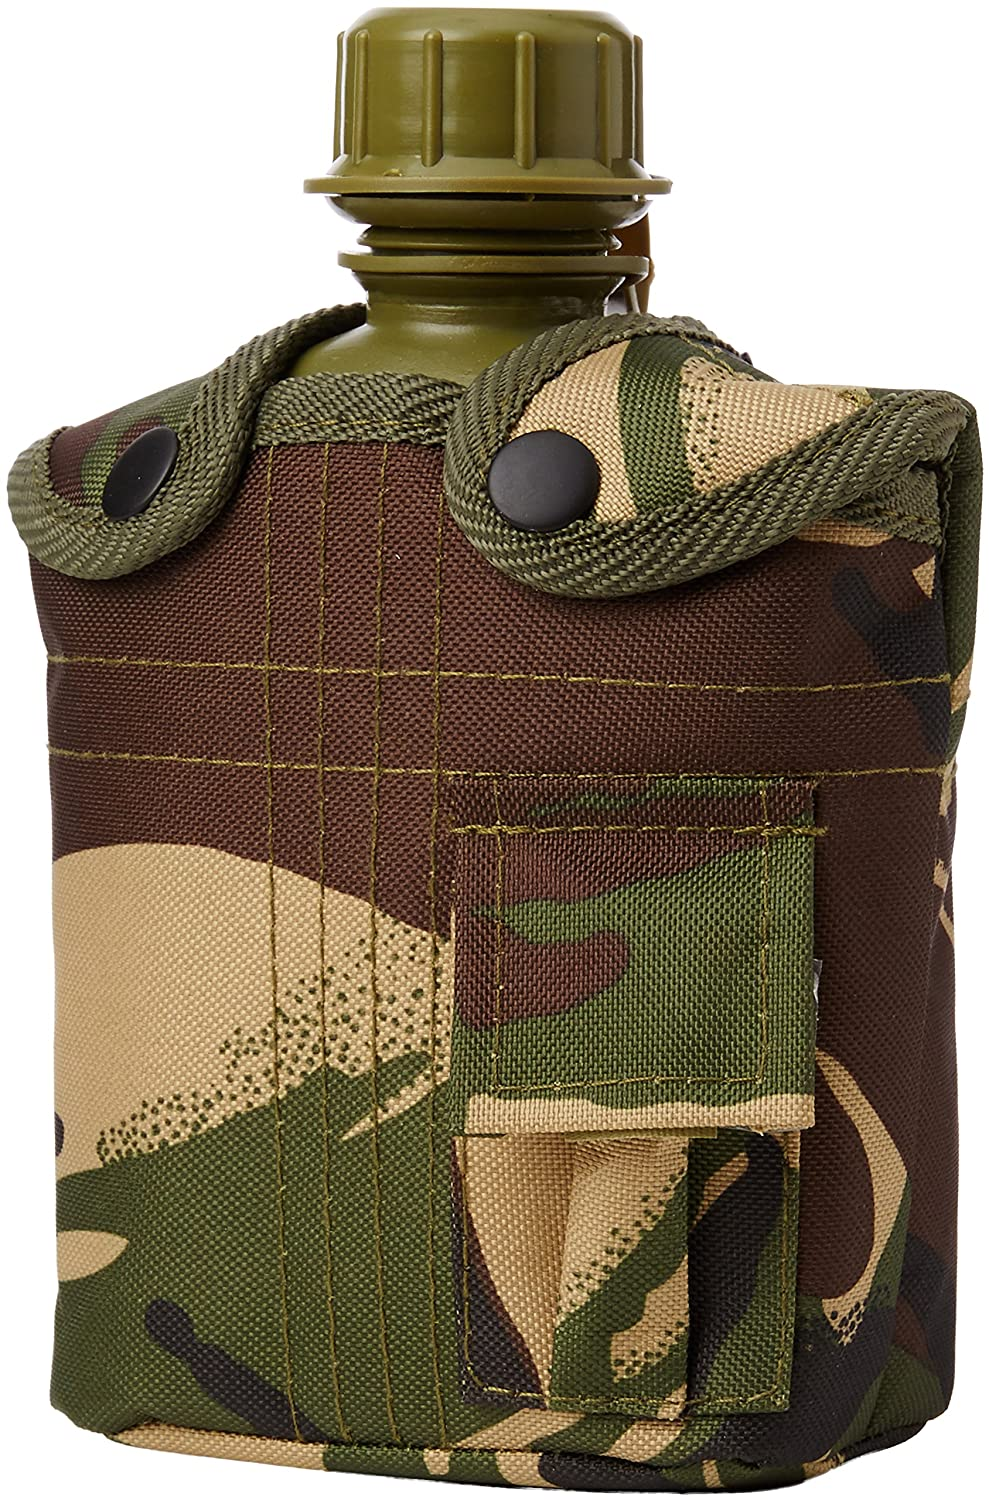 Highlander British DPM Plastic Water Bottle in Camo Cover